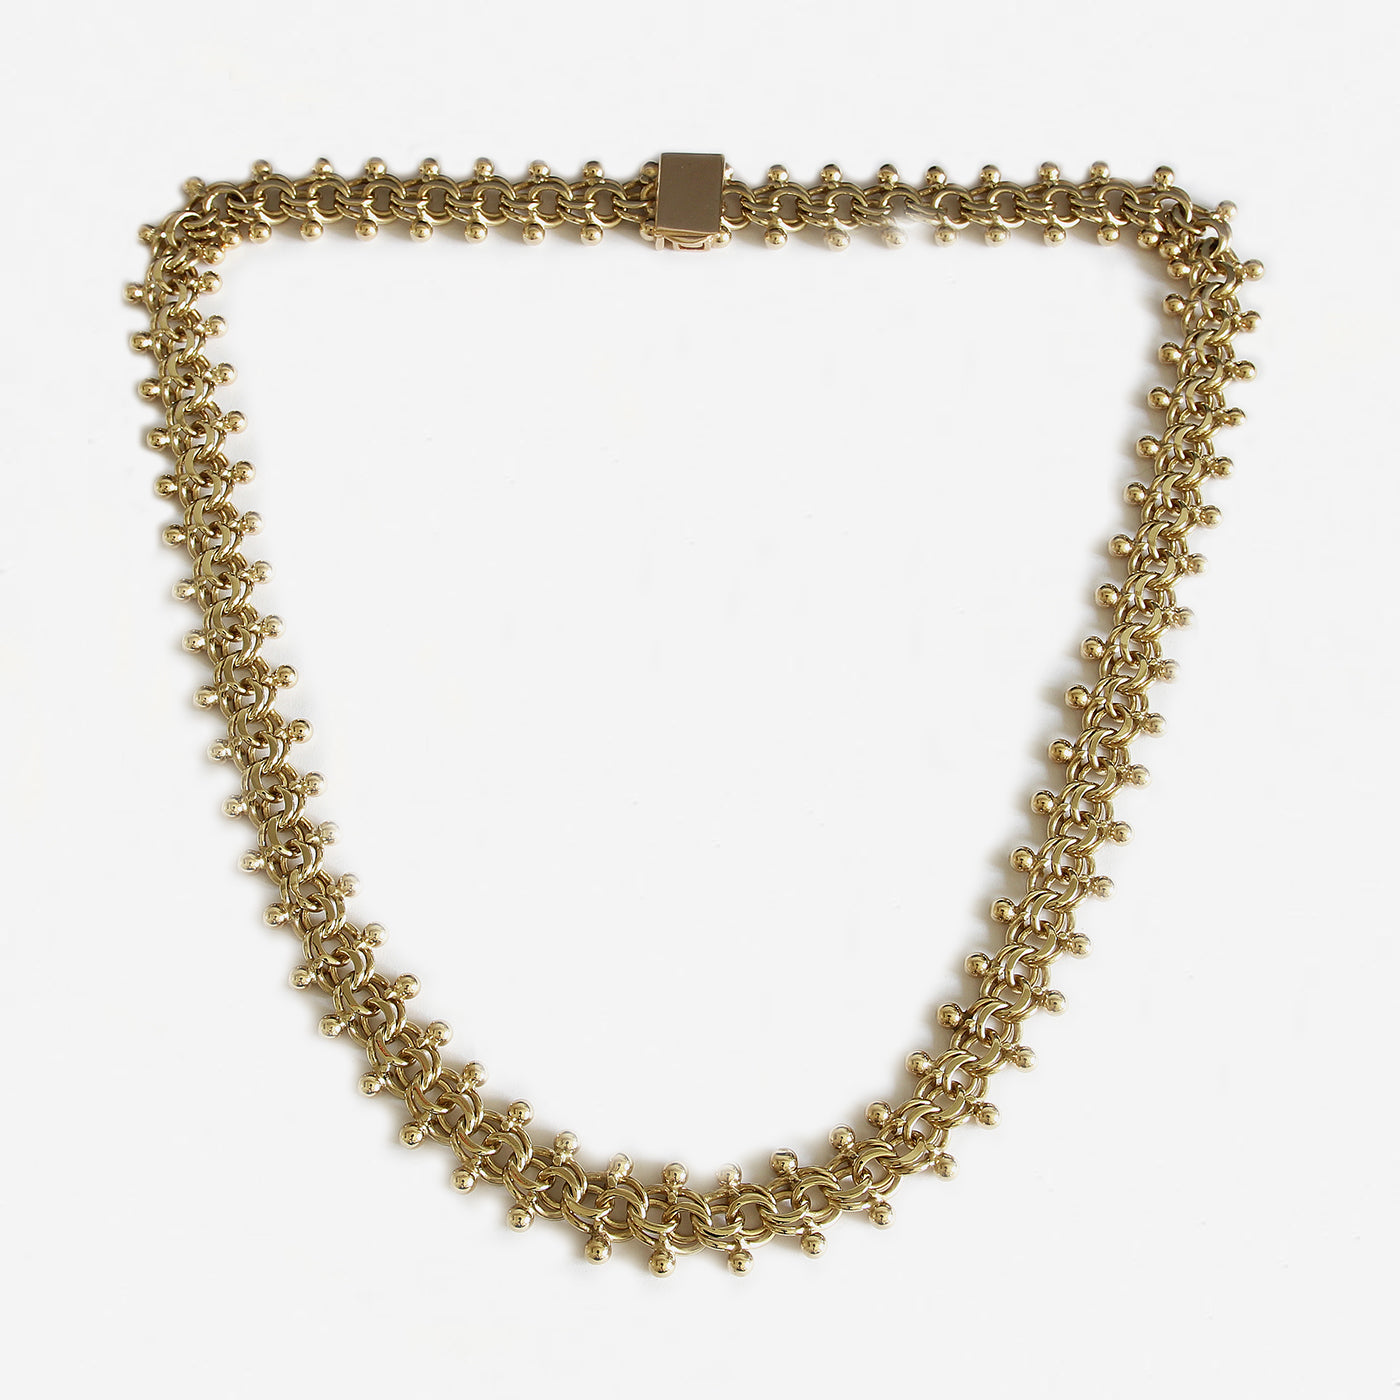 a secondhand vintage bead and curb link necklace in yellow gold